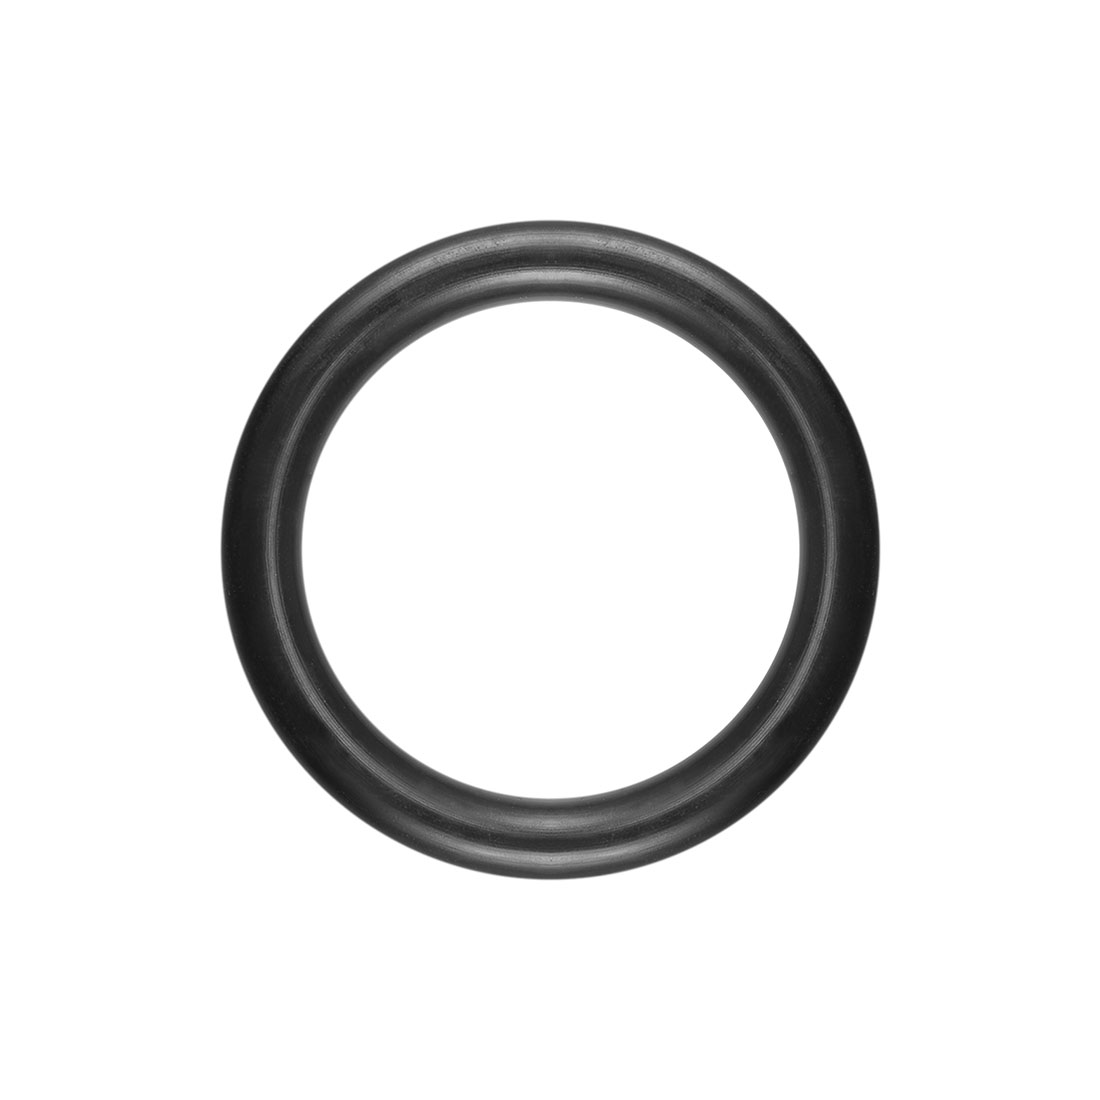 O-Rings Nitrile Rubber 28mm x 36mm x 4mm Round Seal Gasket